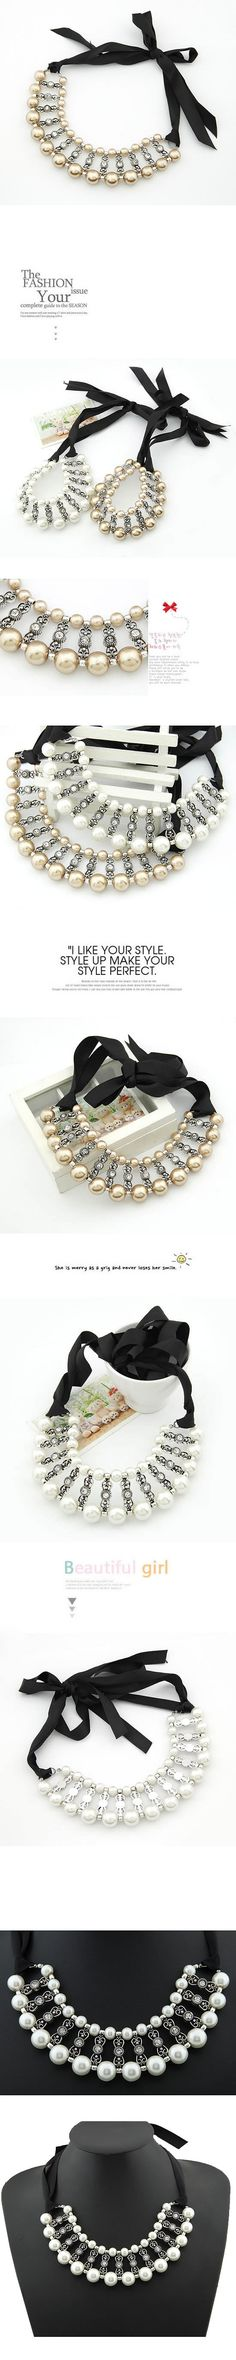 Extreme White Handmade Imitate Pearl Alloy Korean Necklaces http://www.asujewelry.com